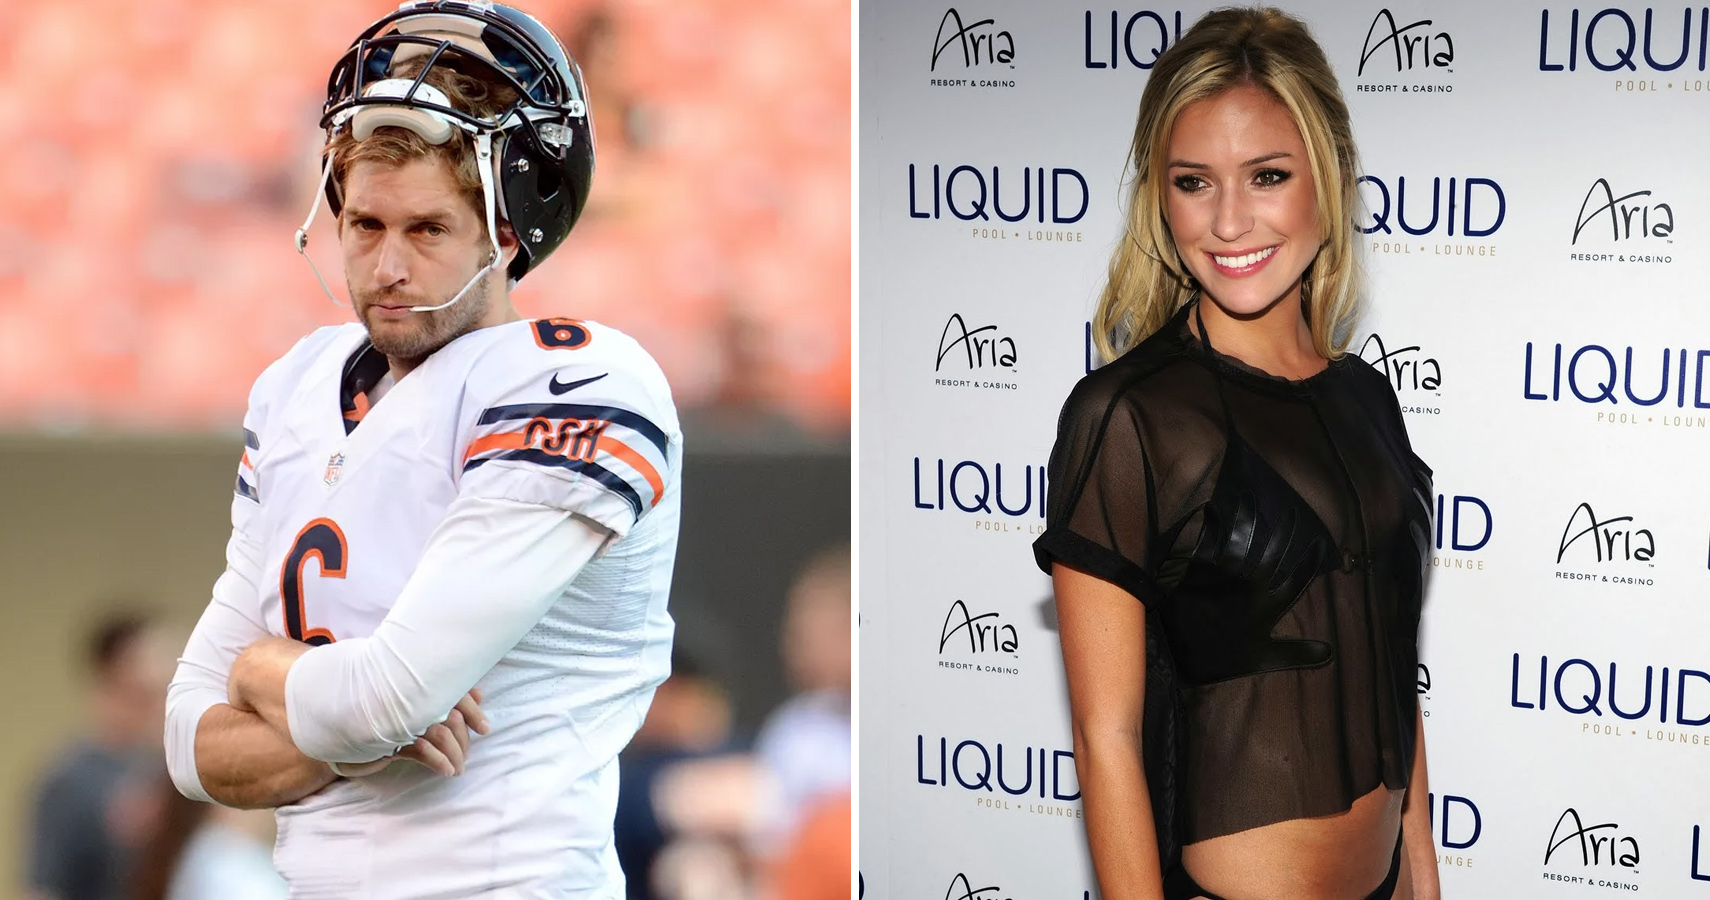 jay cutler and kristin cavallari relationship